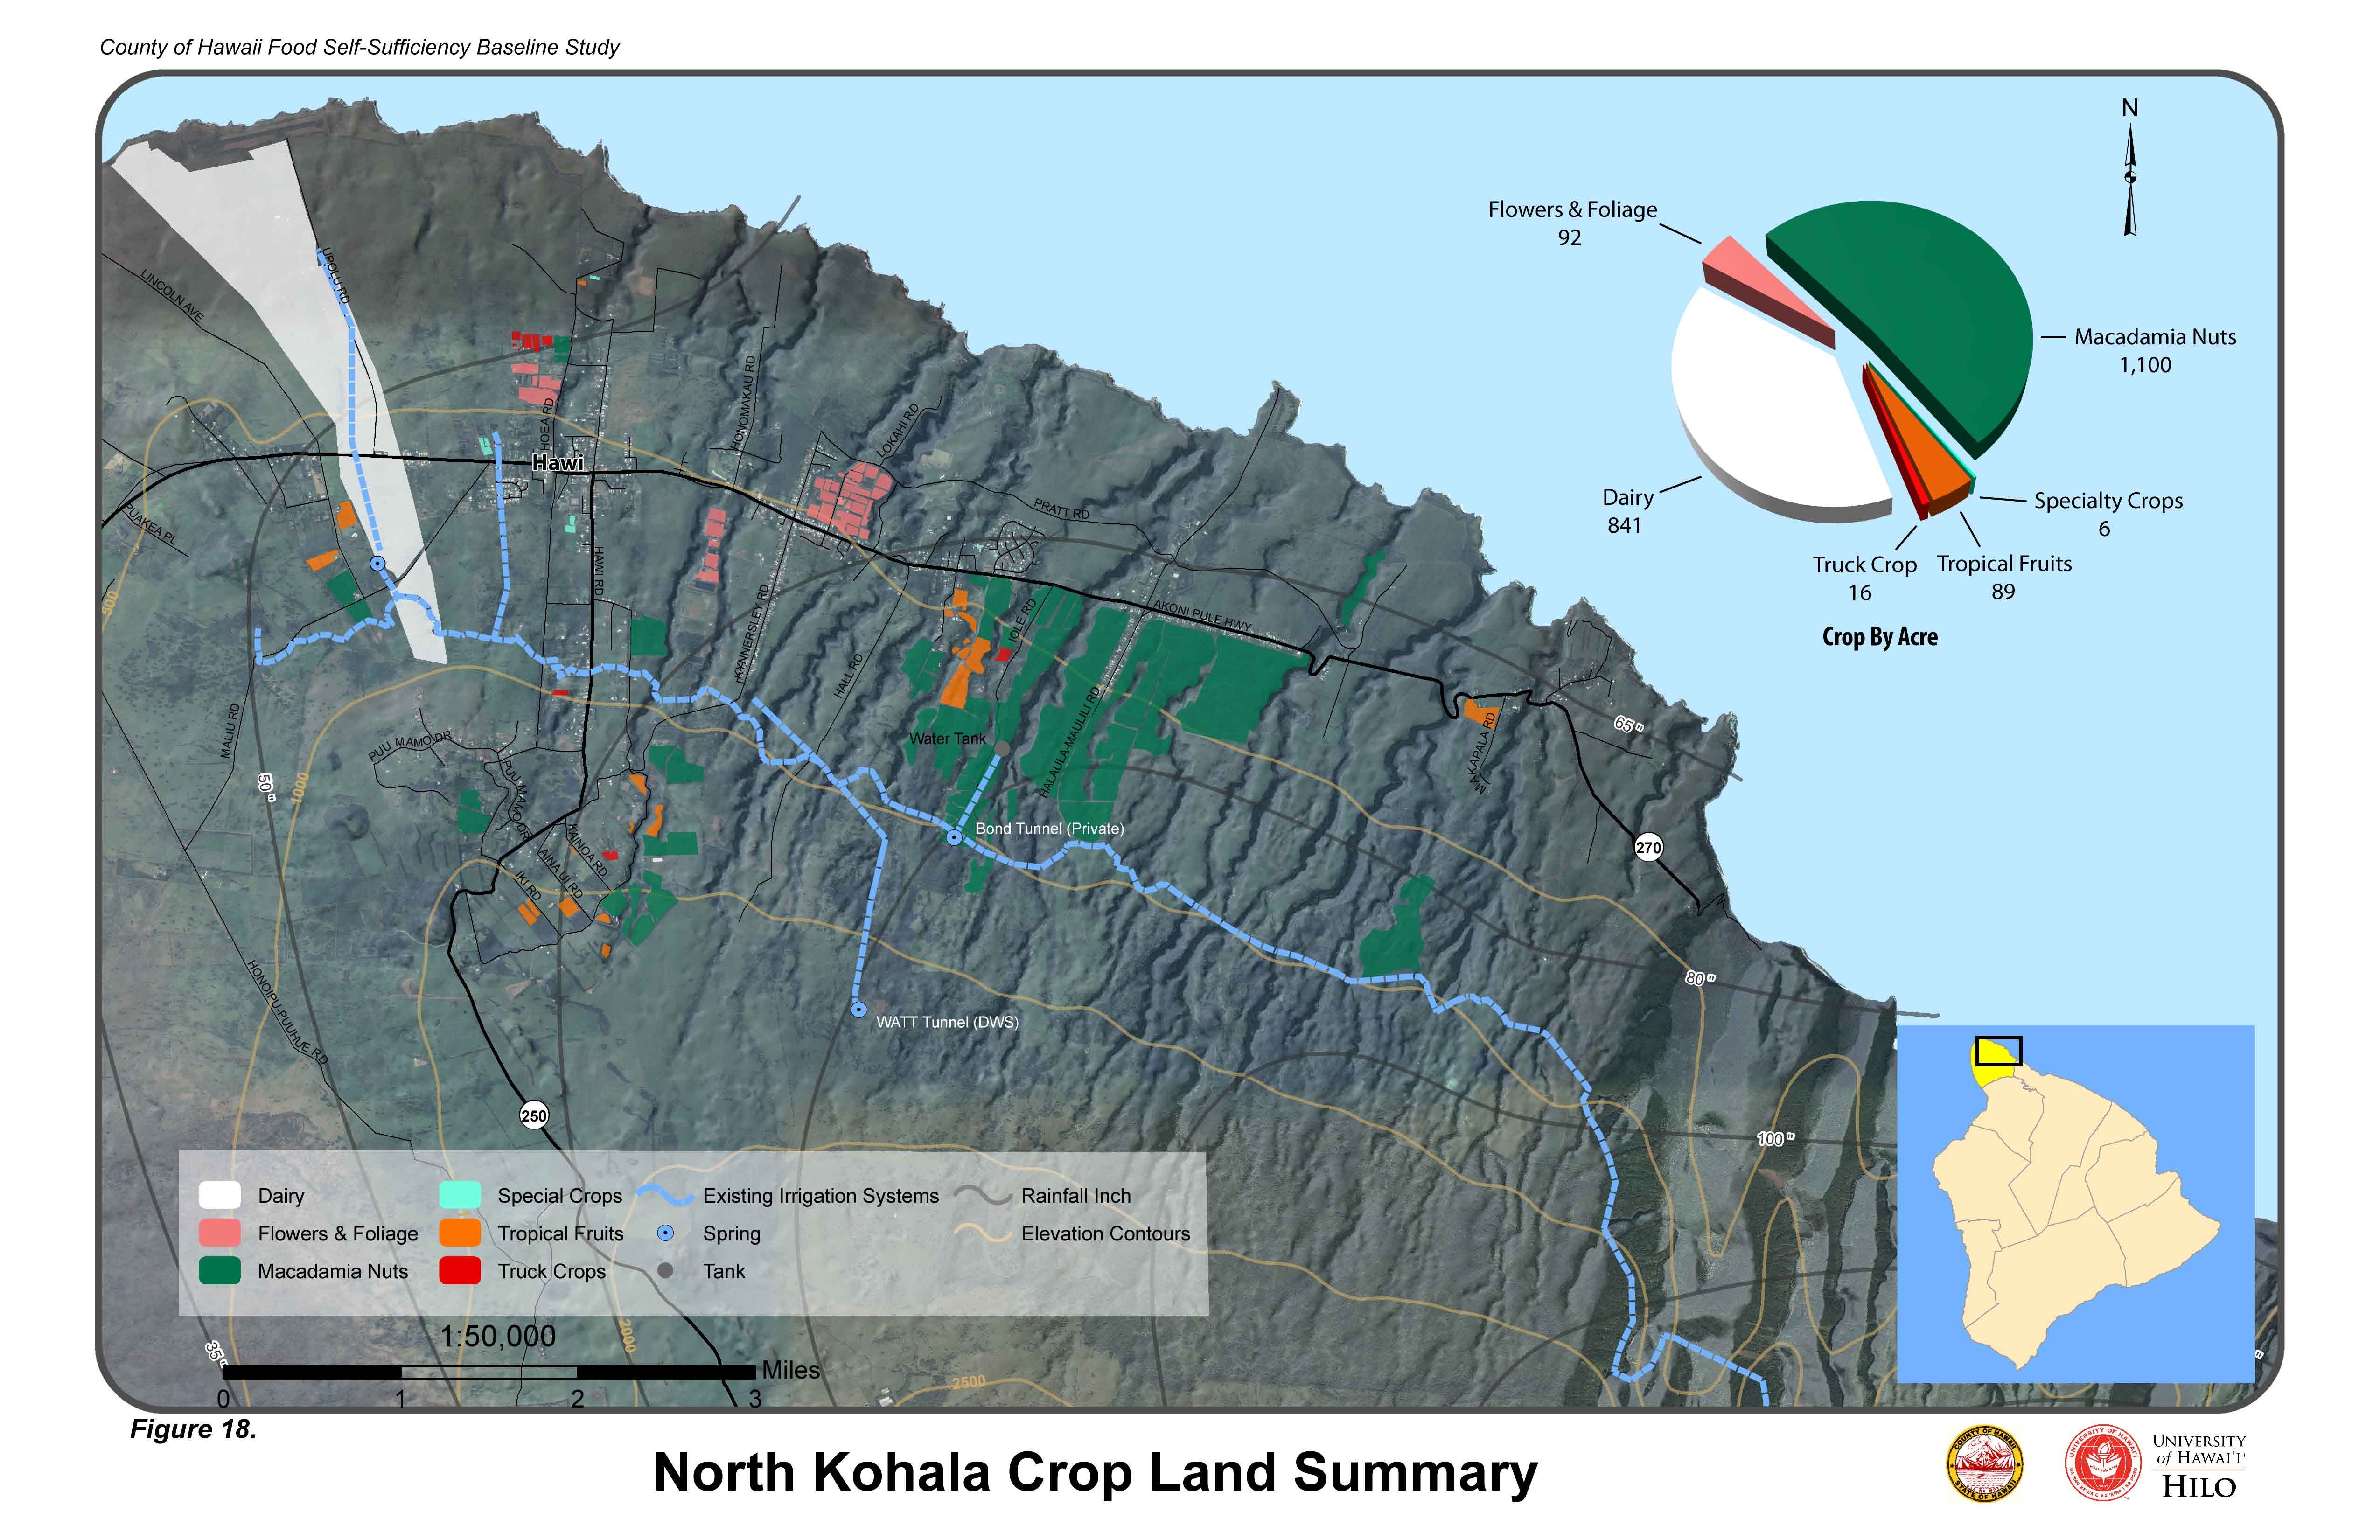 UH Hilo and the Hawai'i Department of Agriculture collaborate on statewide agricultural survey